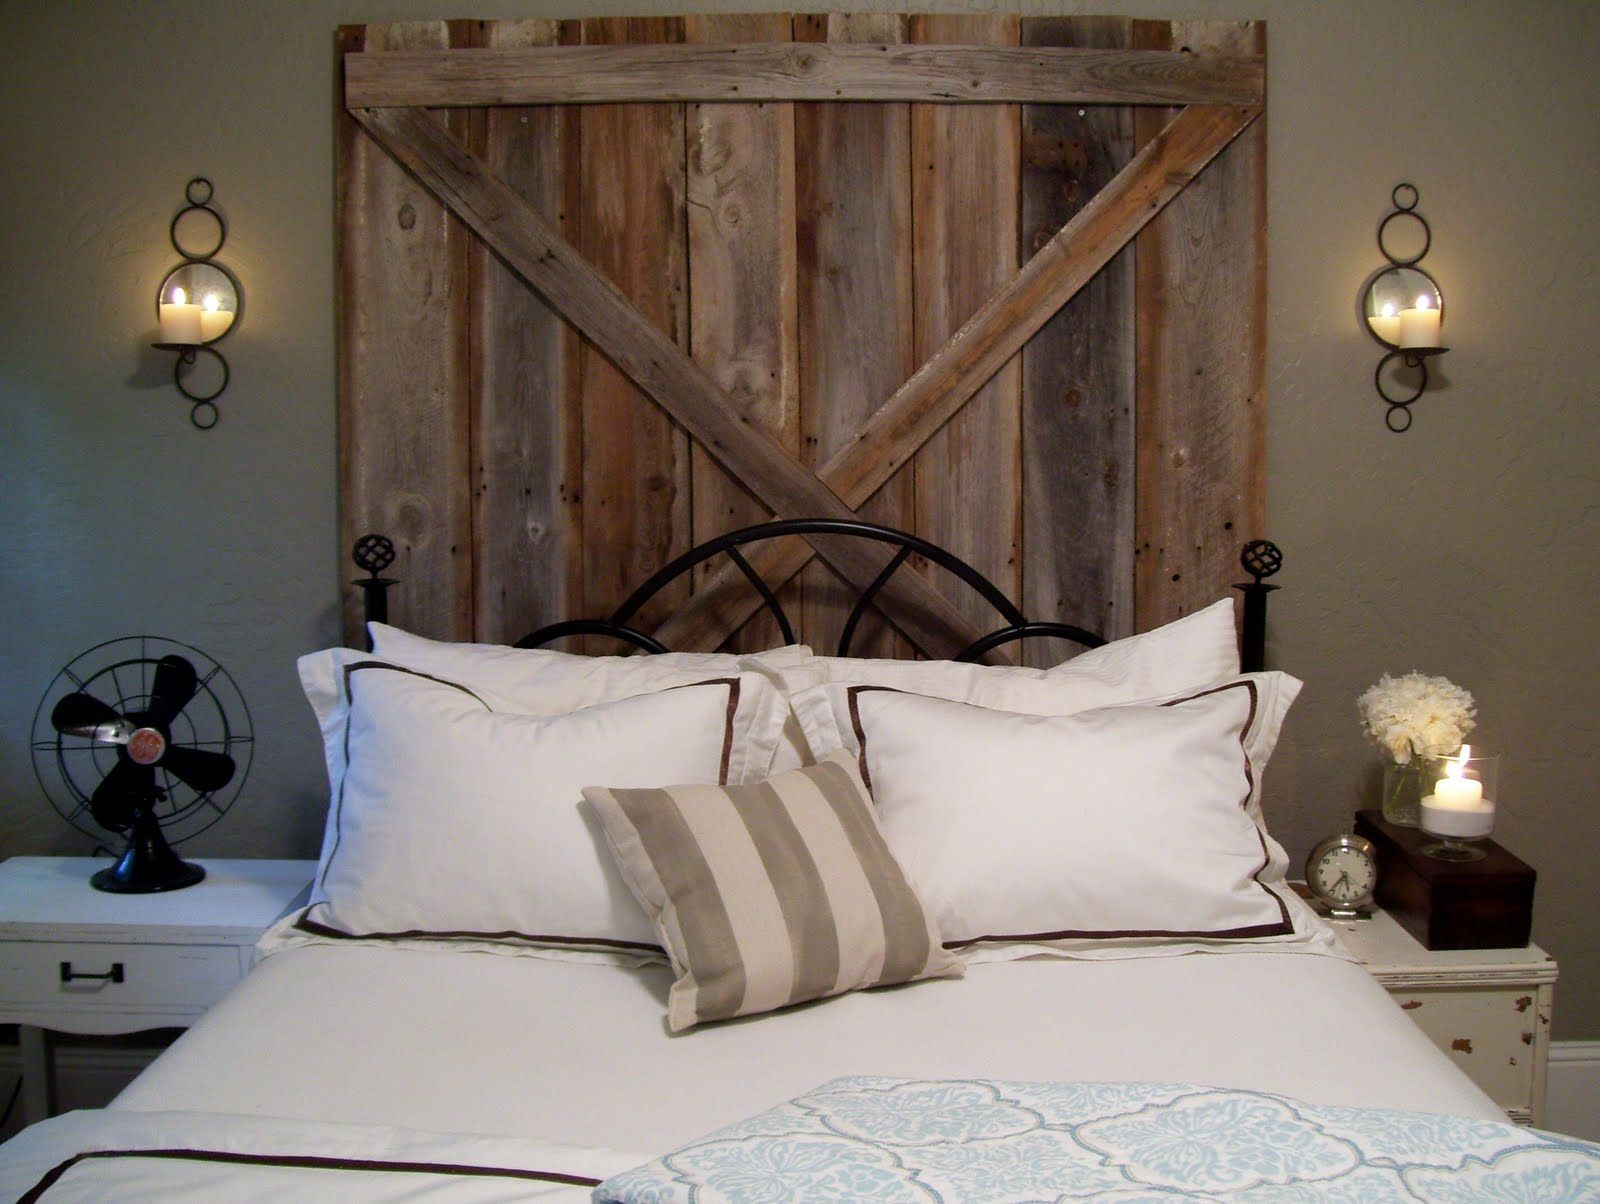 I Think That Bedrooms Are My Favorite Room To Make Over. There Are So Many  Quick And Easy Things You Can Do In A Bedroom That Can Make A Big  Difference.